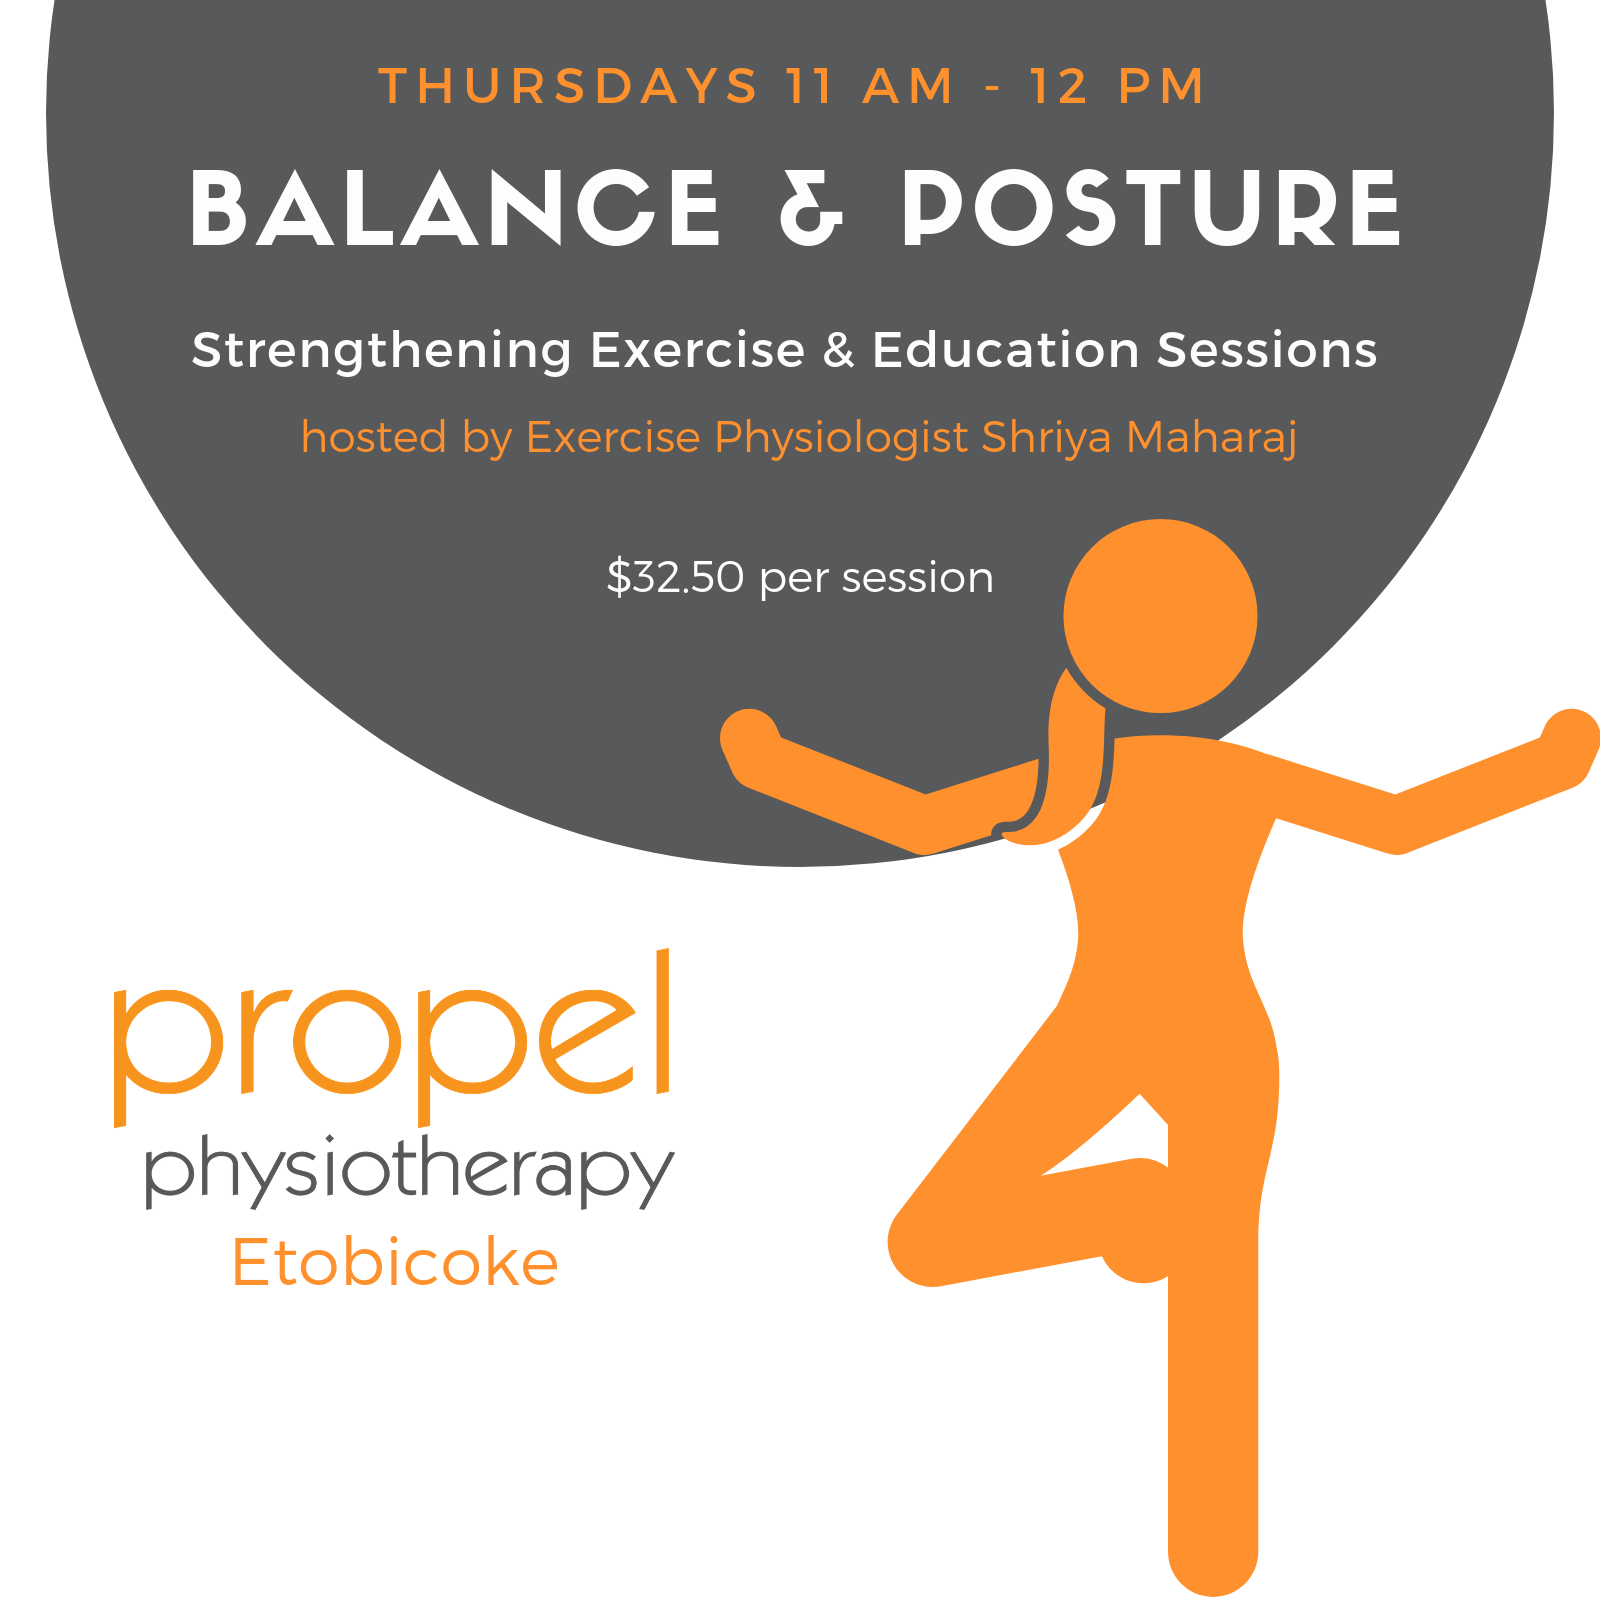 Balance and Posture Propel Physiotherapy Events Etobicoke